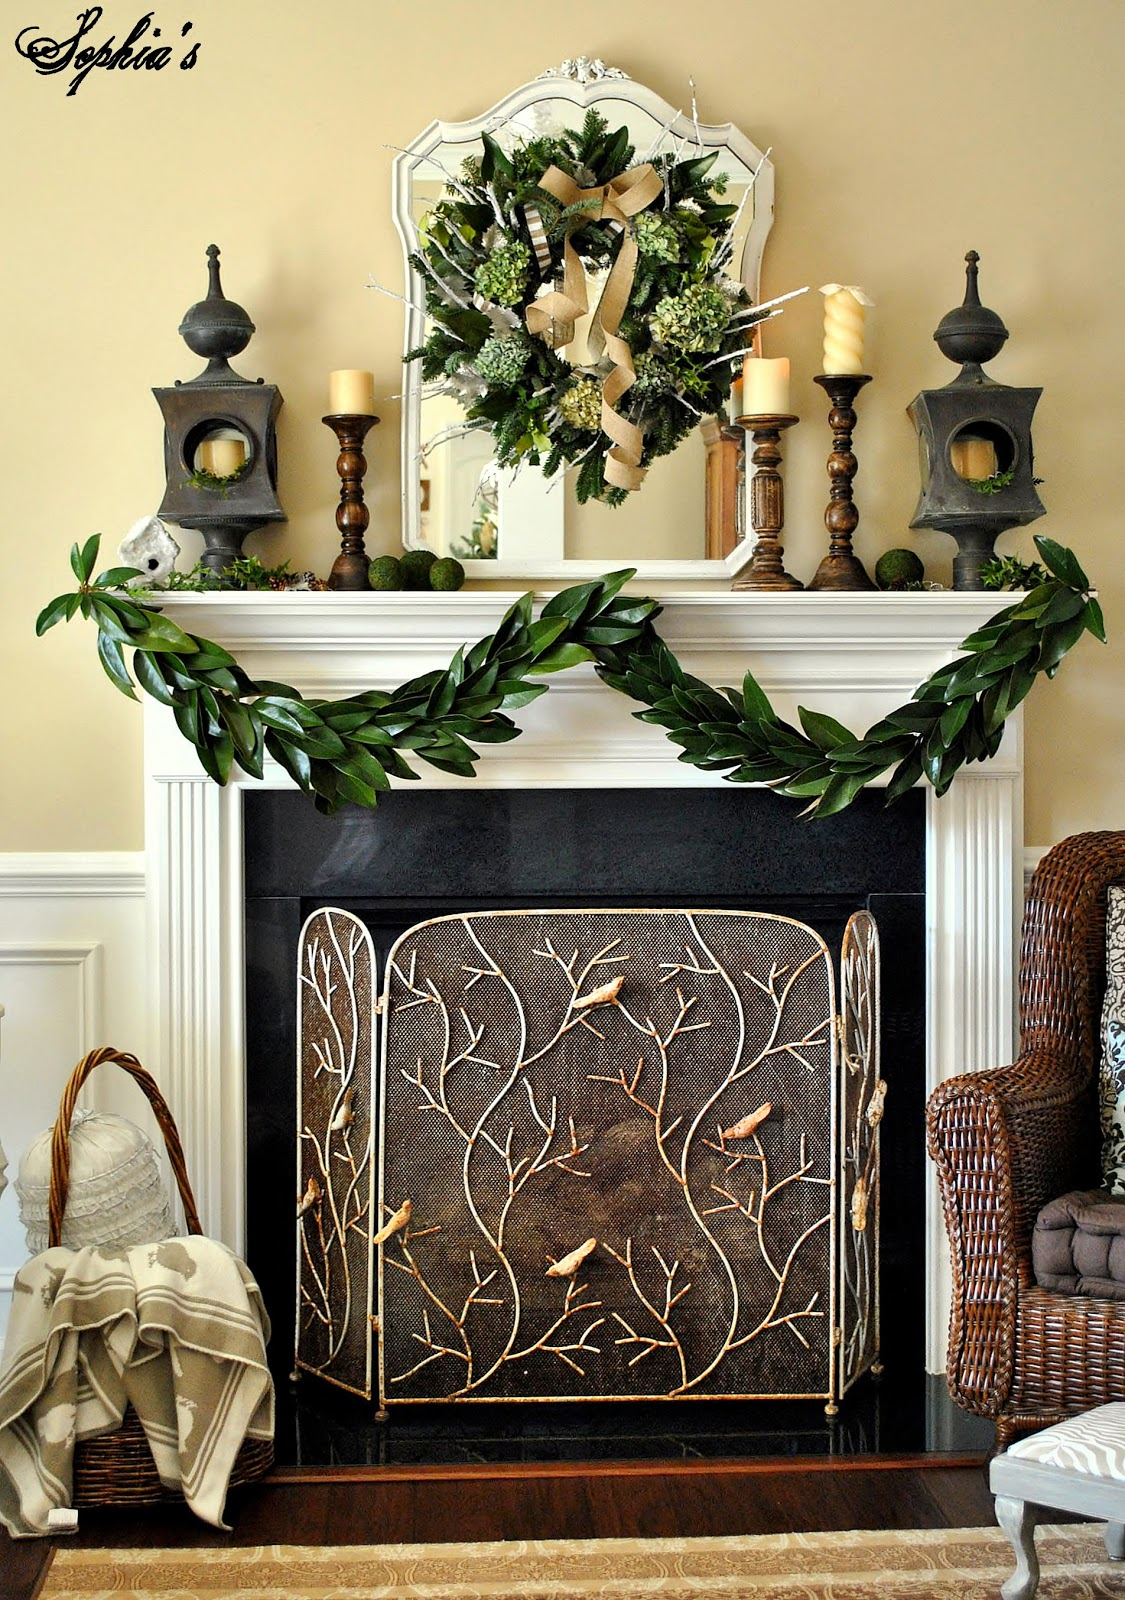 How To Make A Garland With Magnolia Leaves